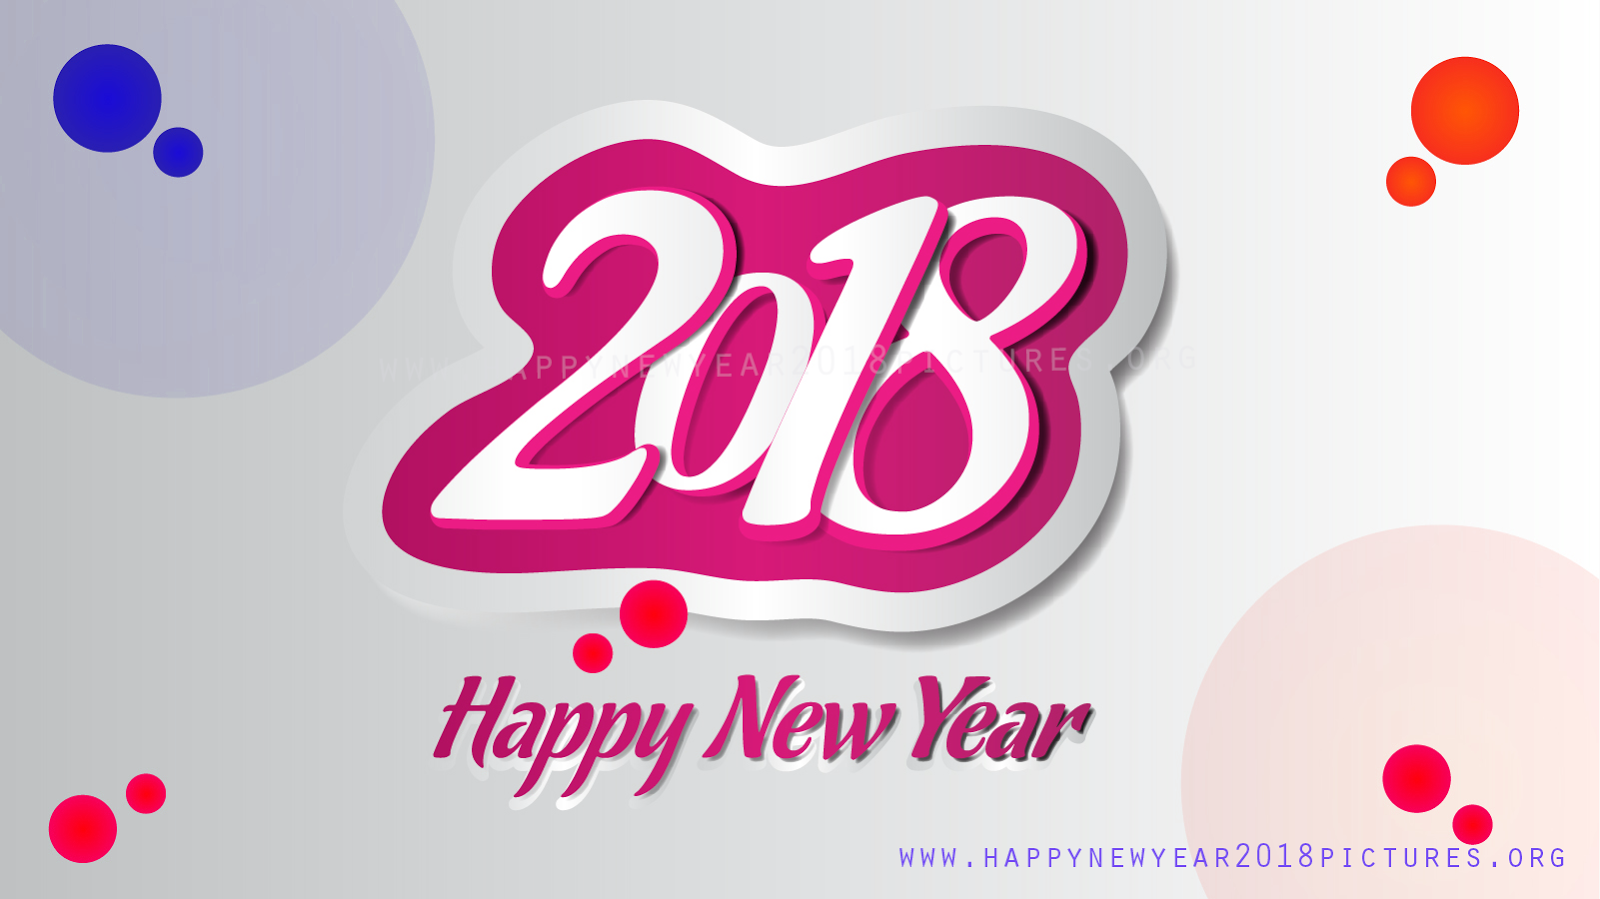 2018 clipart simple. Happy new year images